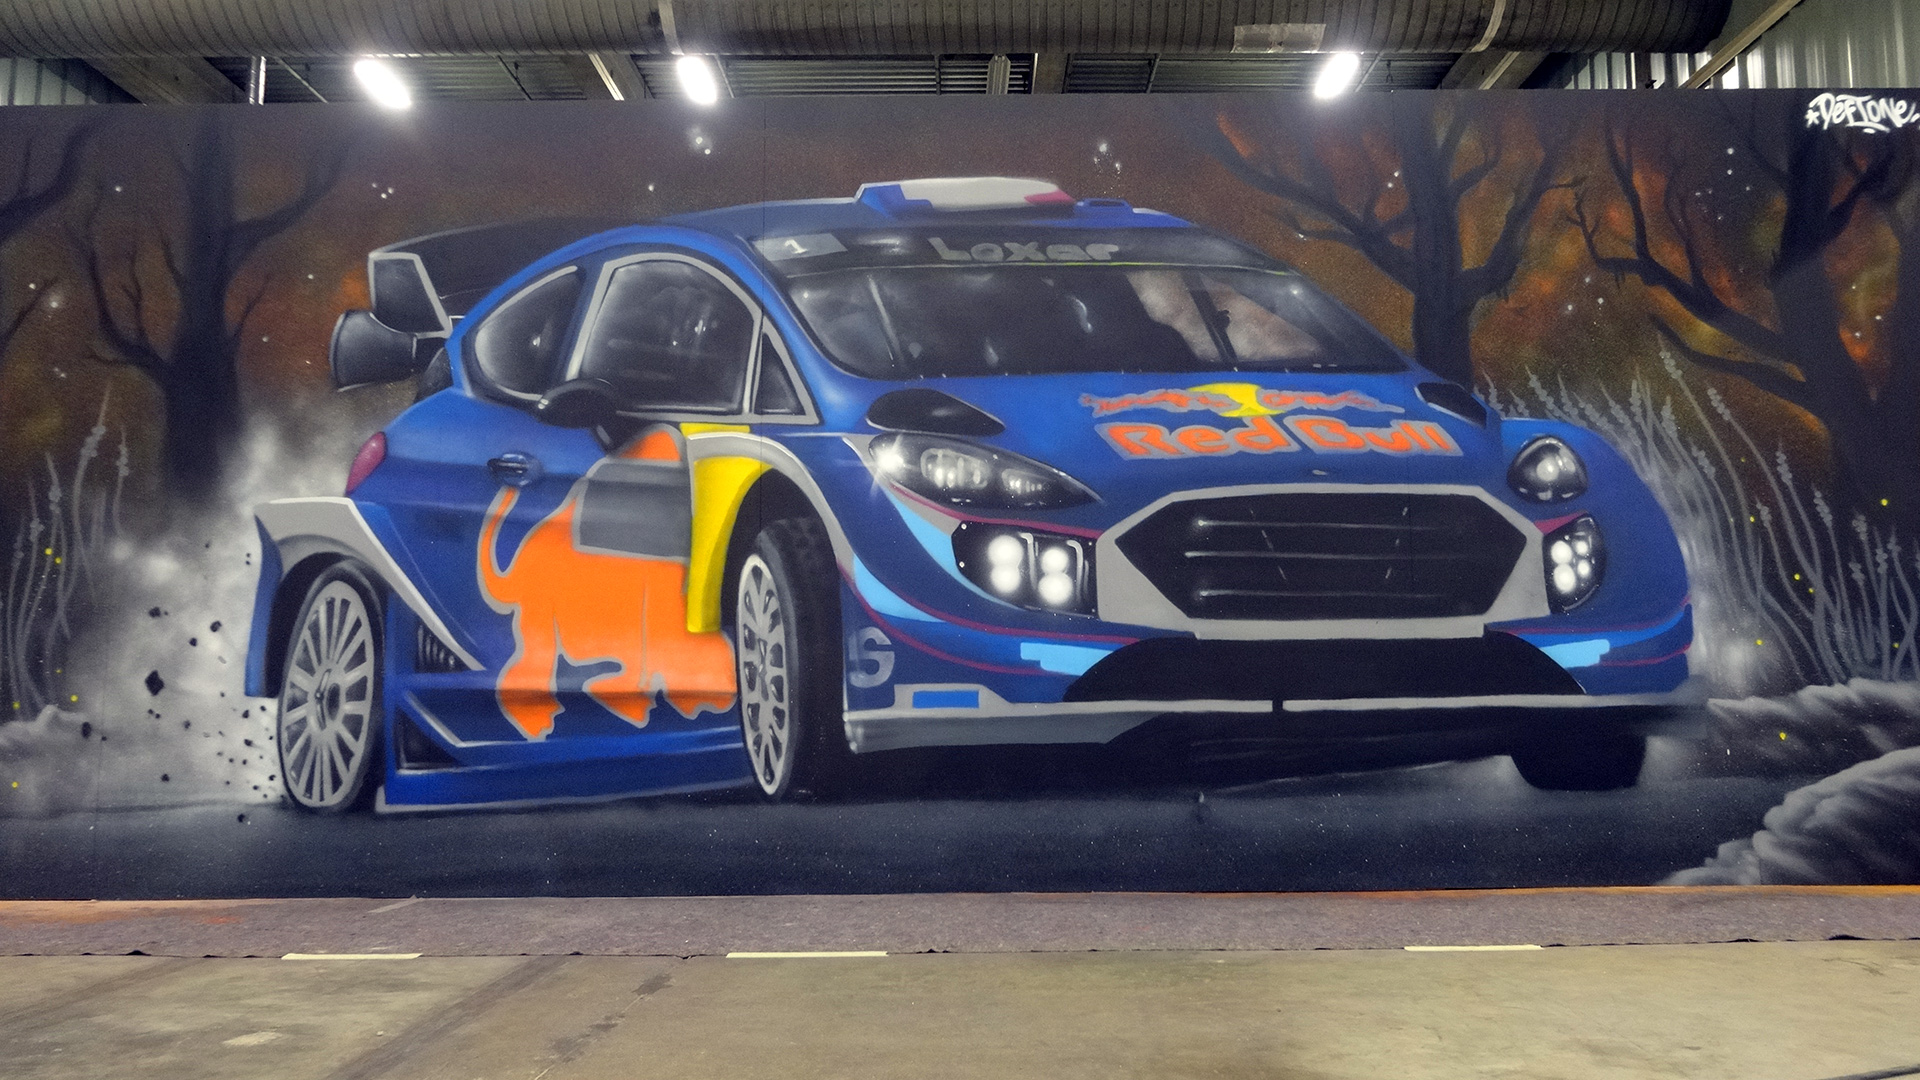 Ford Fiesta - WRC - Michelin - Graffiti - Street-Art